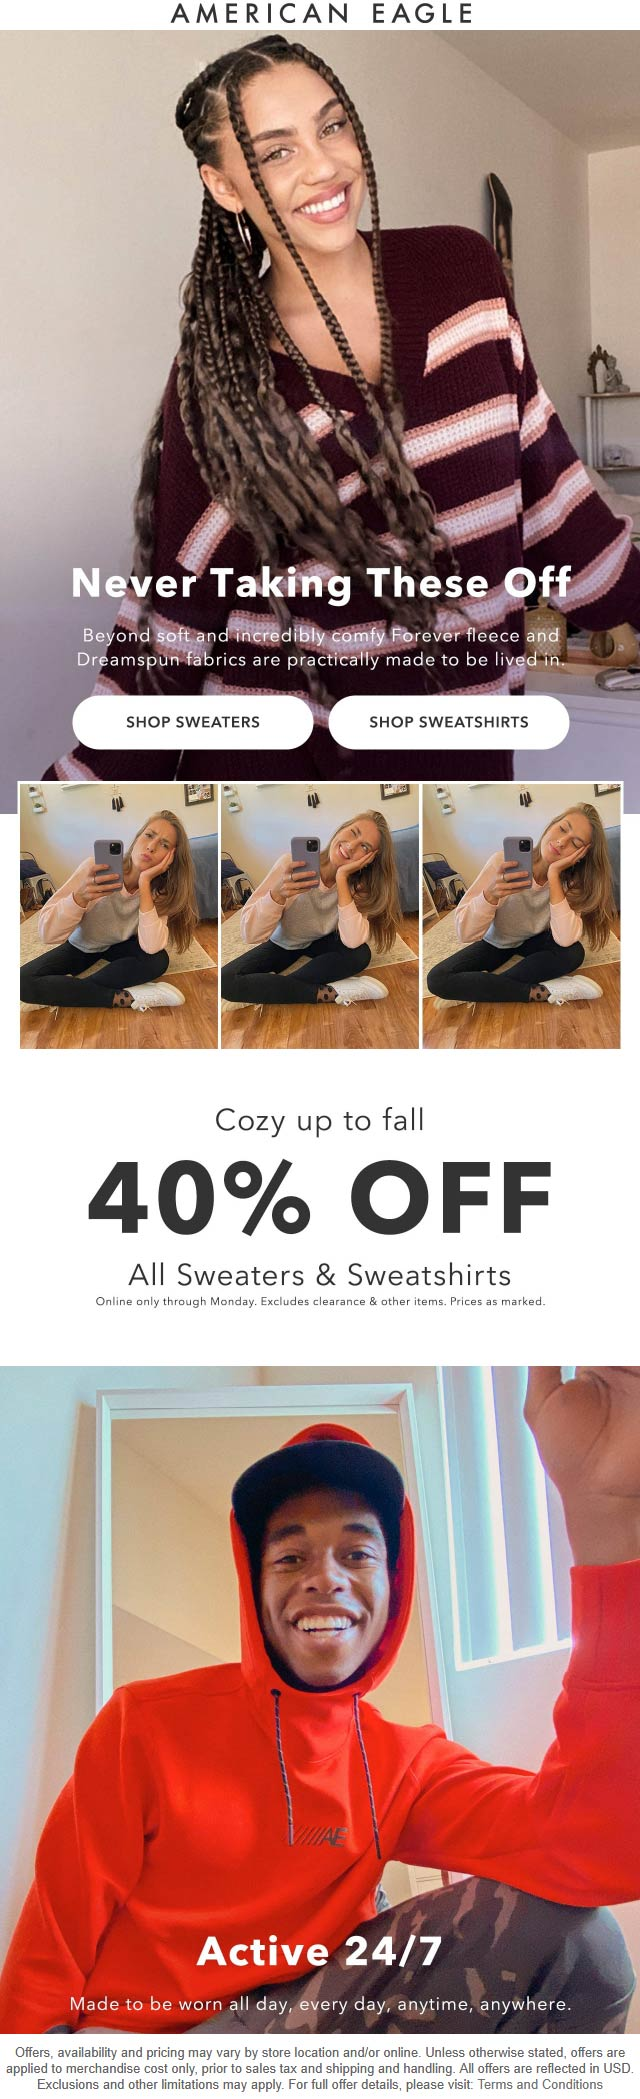 American Eagle stores Coupon  40% off all sweaters & sweatshirts online at American Eagle #americaneagle